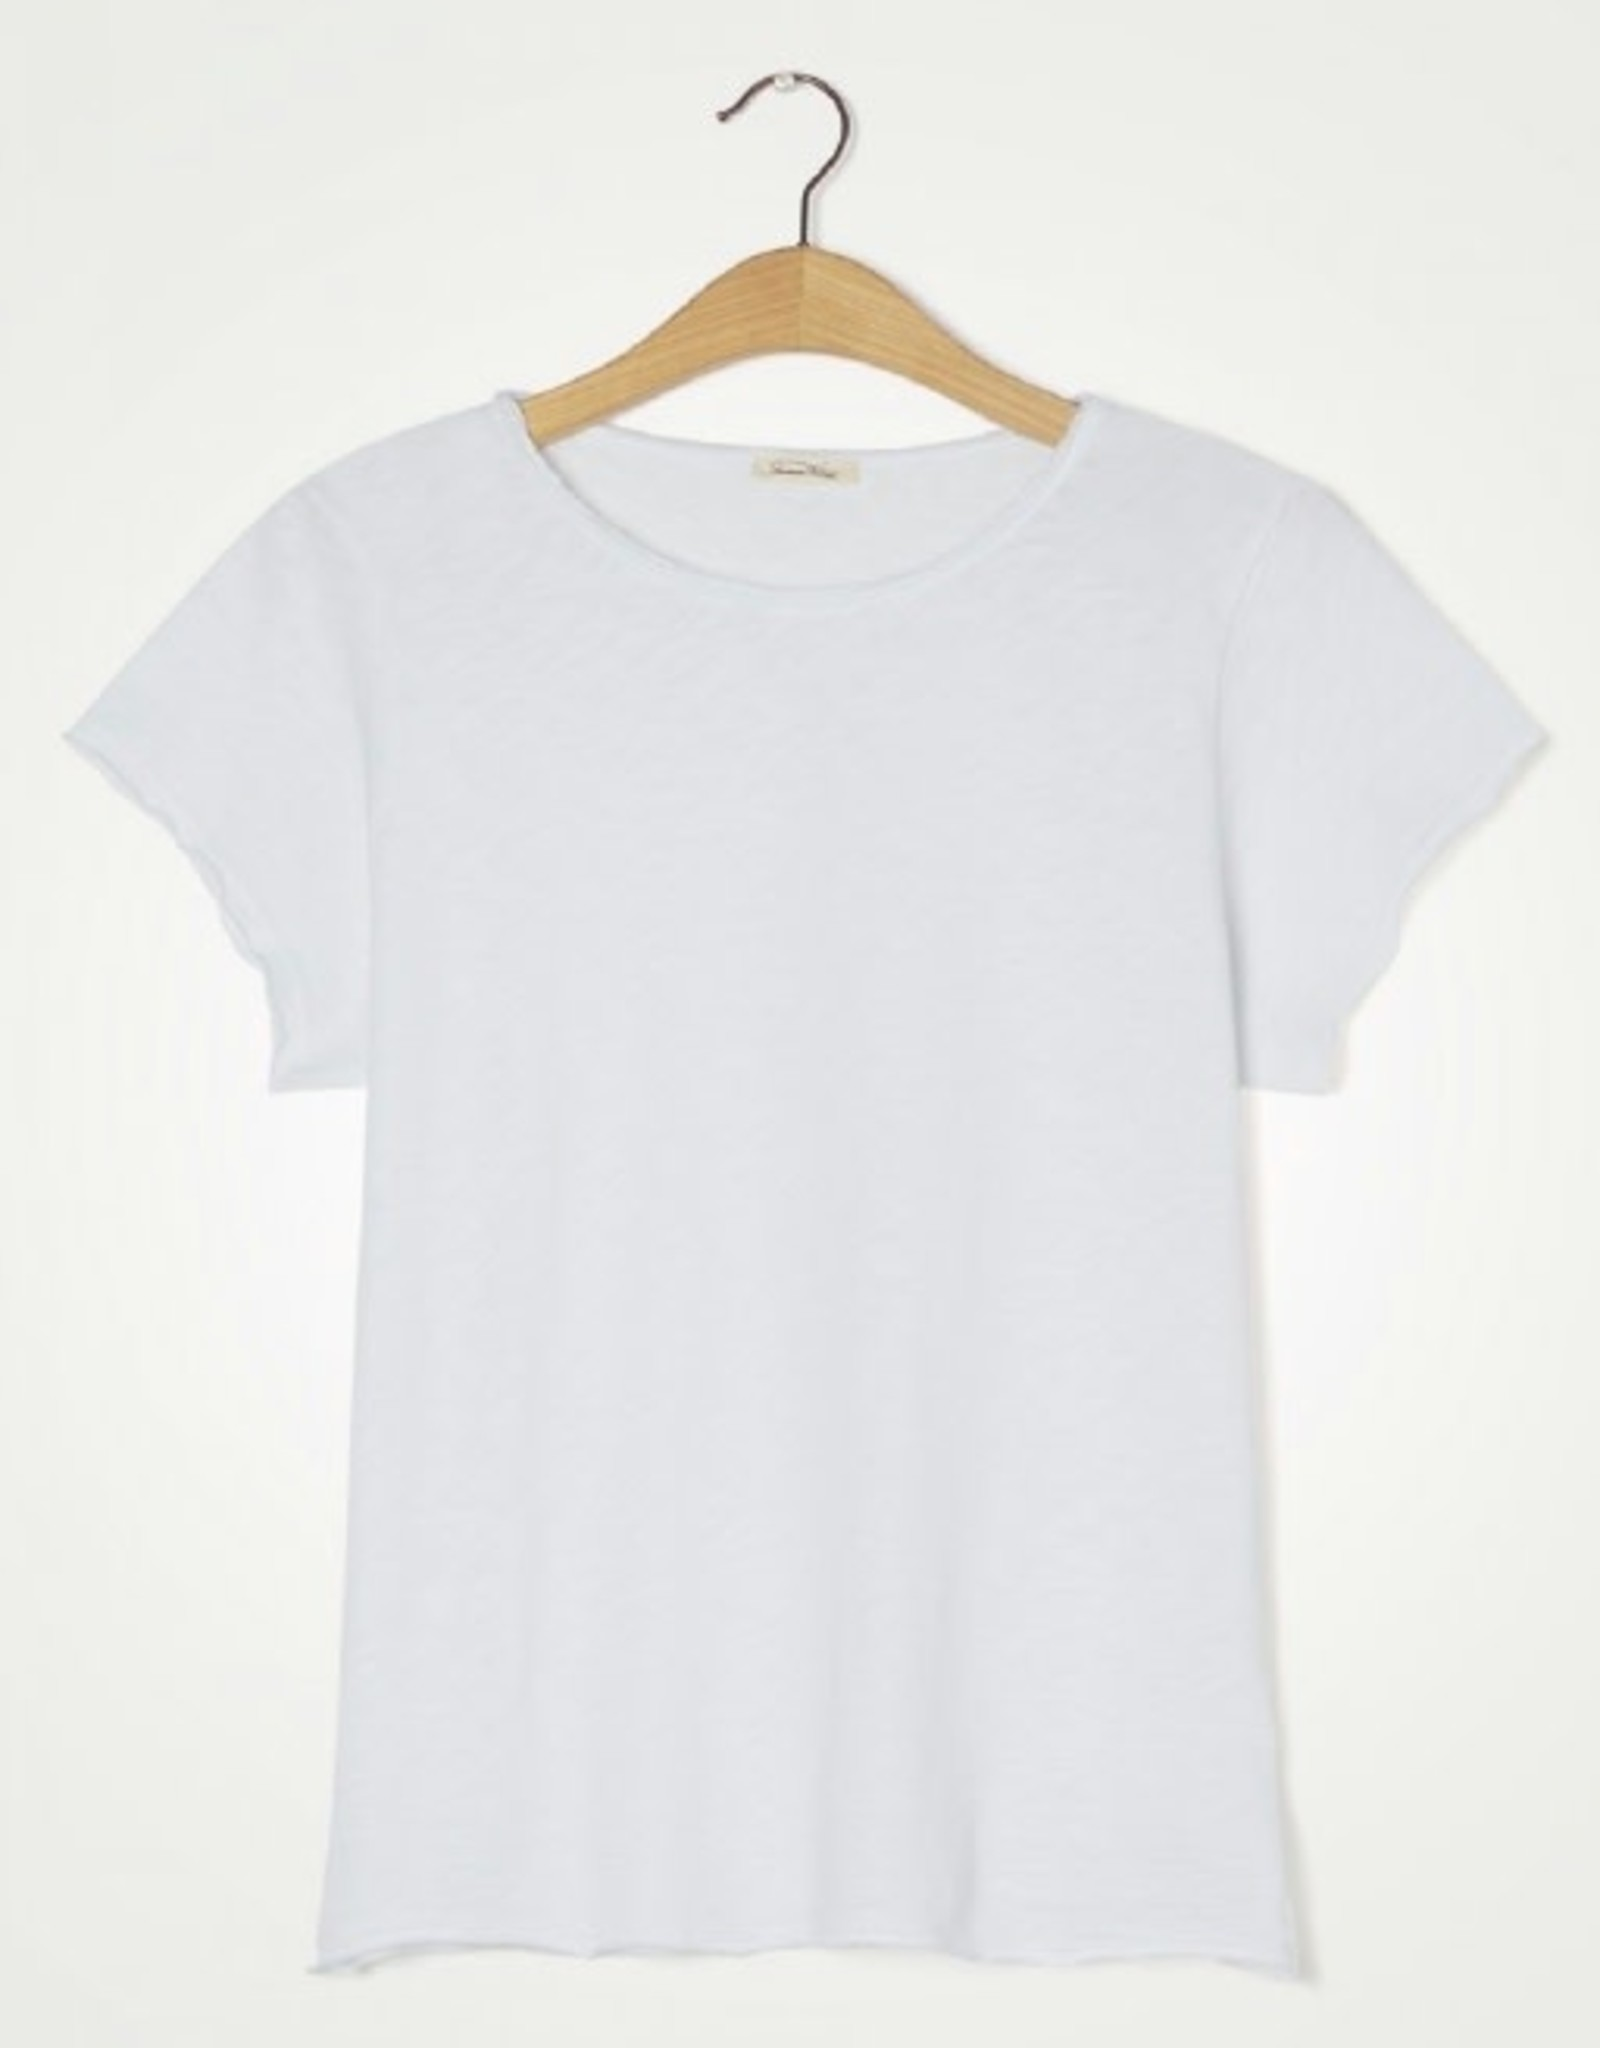 American Vintage T-shirt 'Sonoma' Boothals - Wit - American Vintage